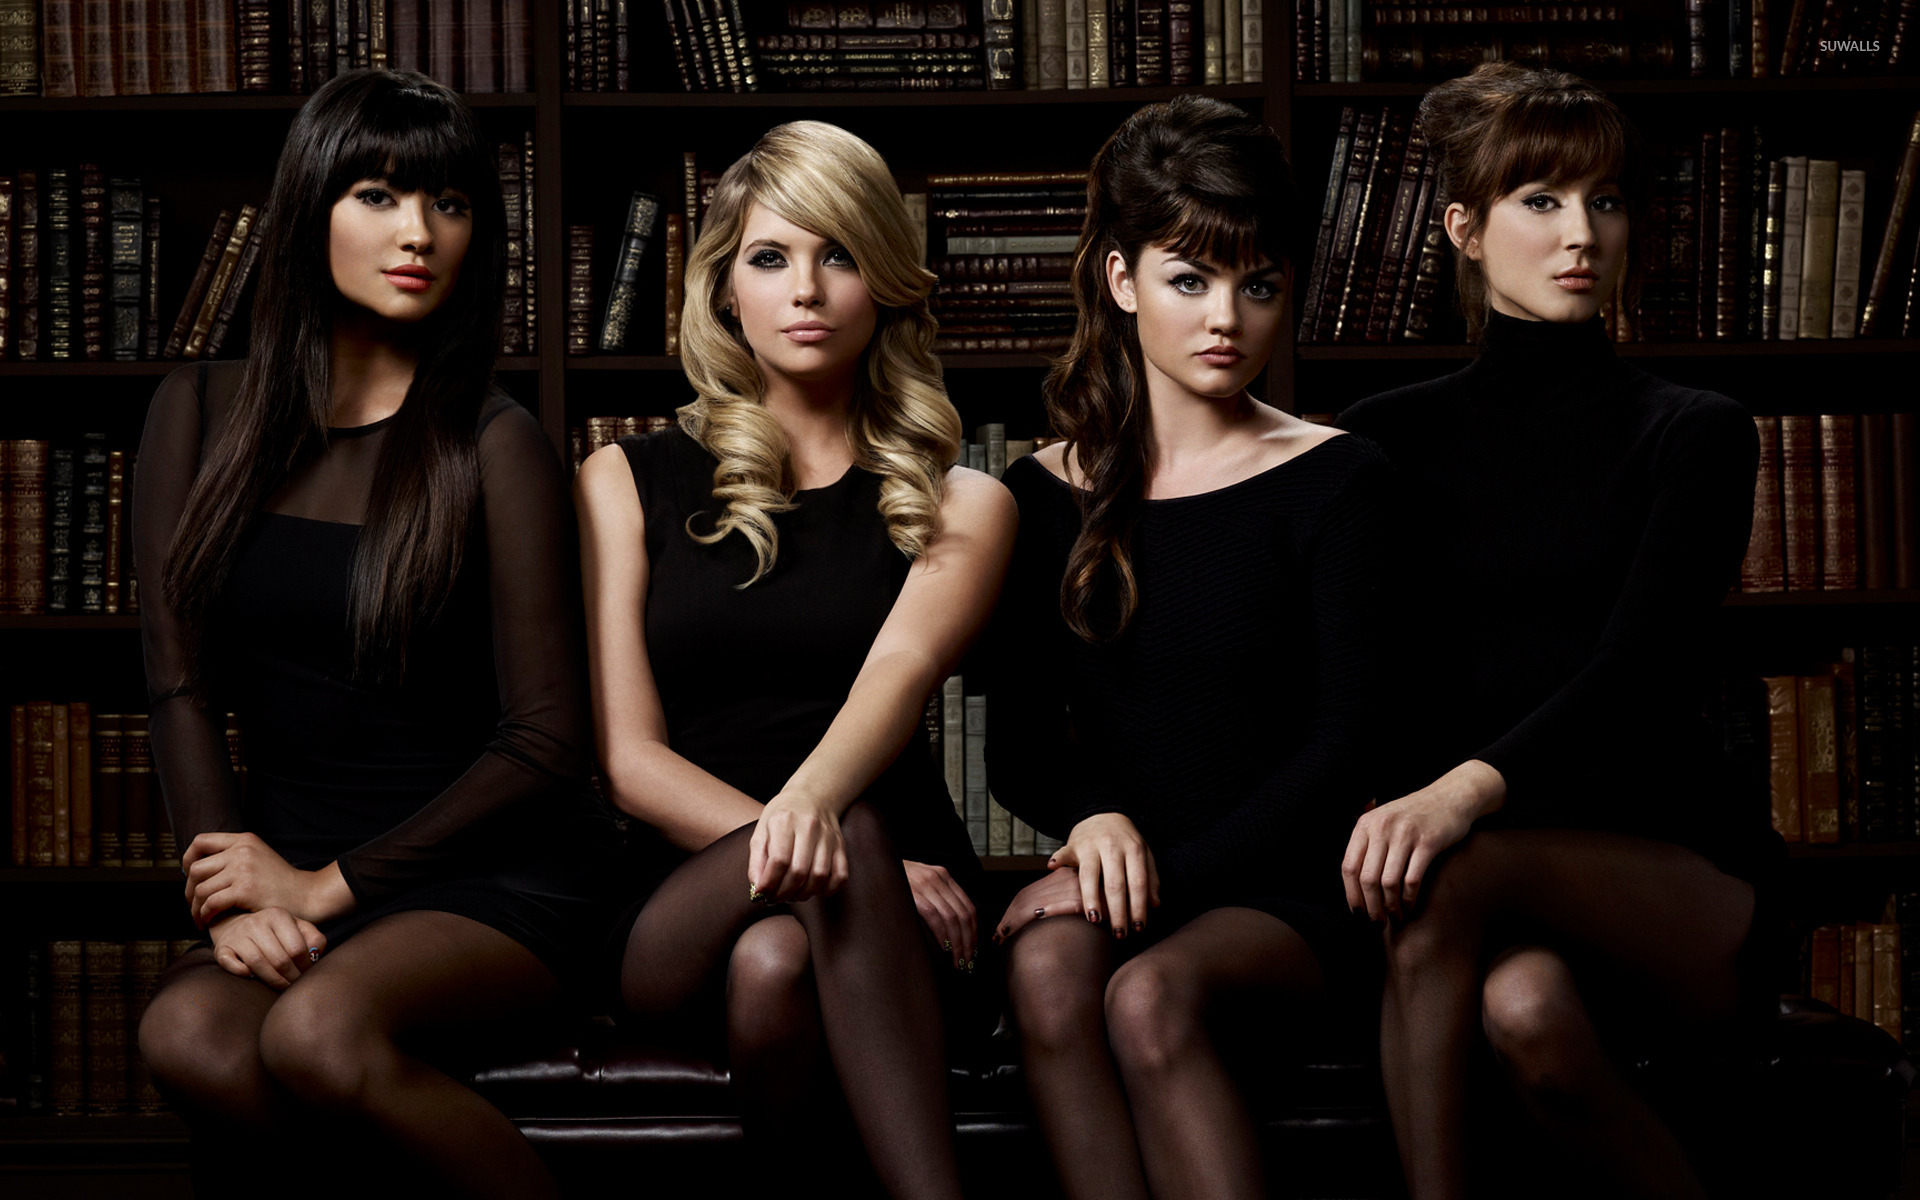 pretty little liars [5] wallpaper - tv show wallpapers - #15013